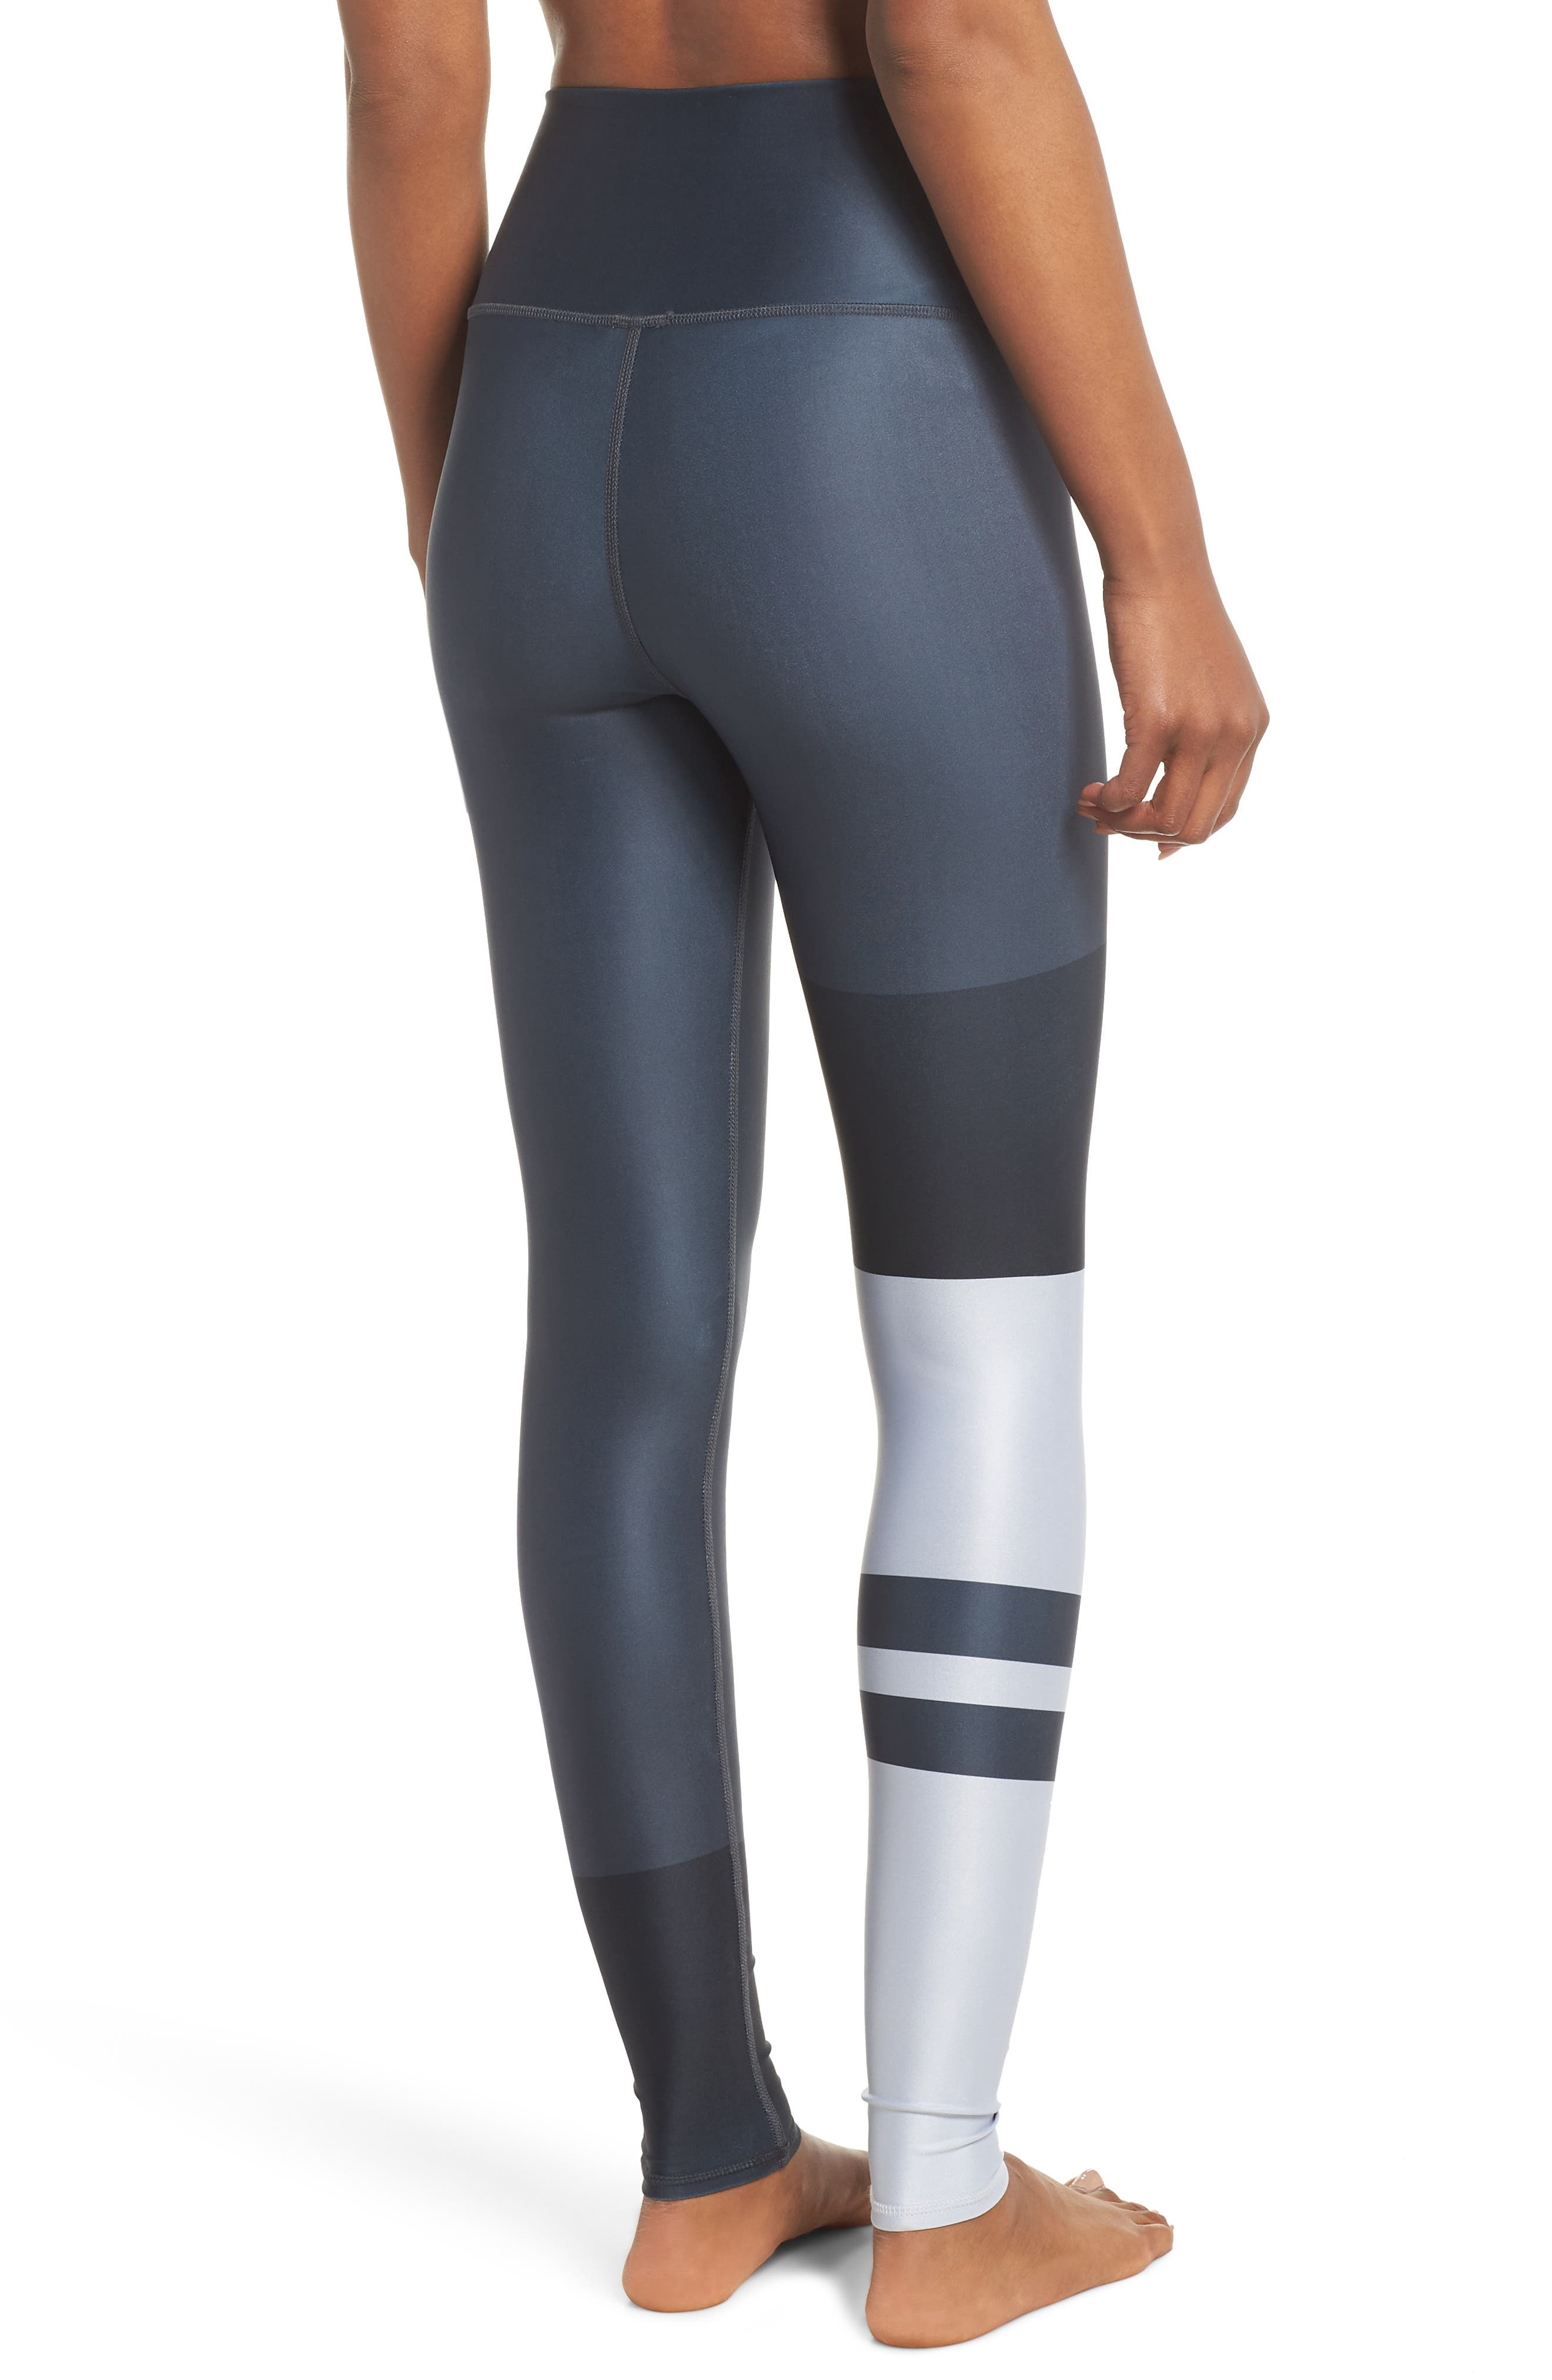 Airbrush High Waist Leggings,                             Alternate thumbnail 2, color,                             ANTHRACITE ZENITH